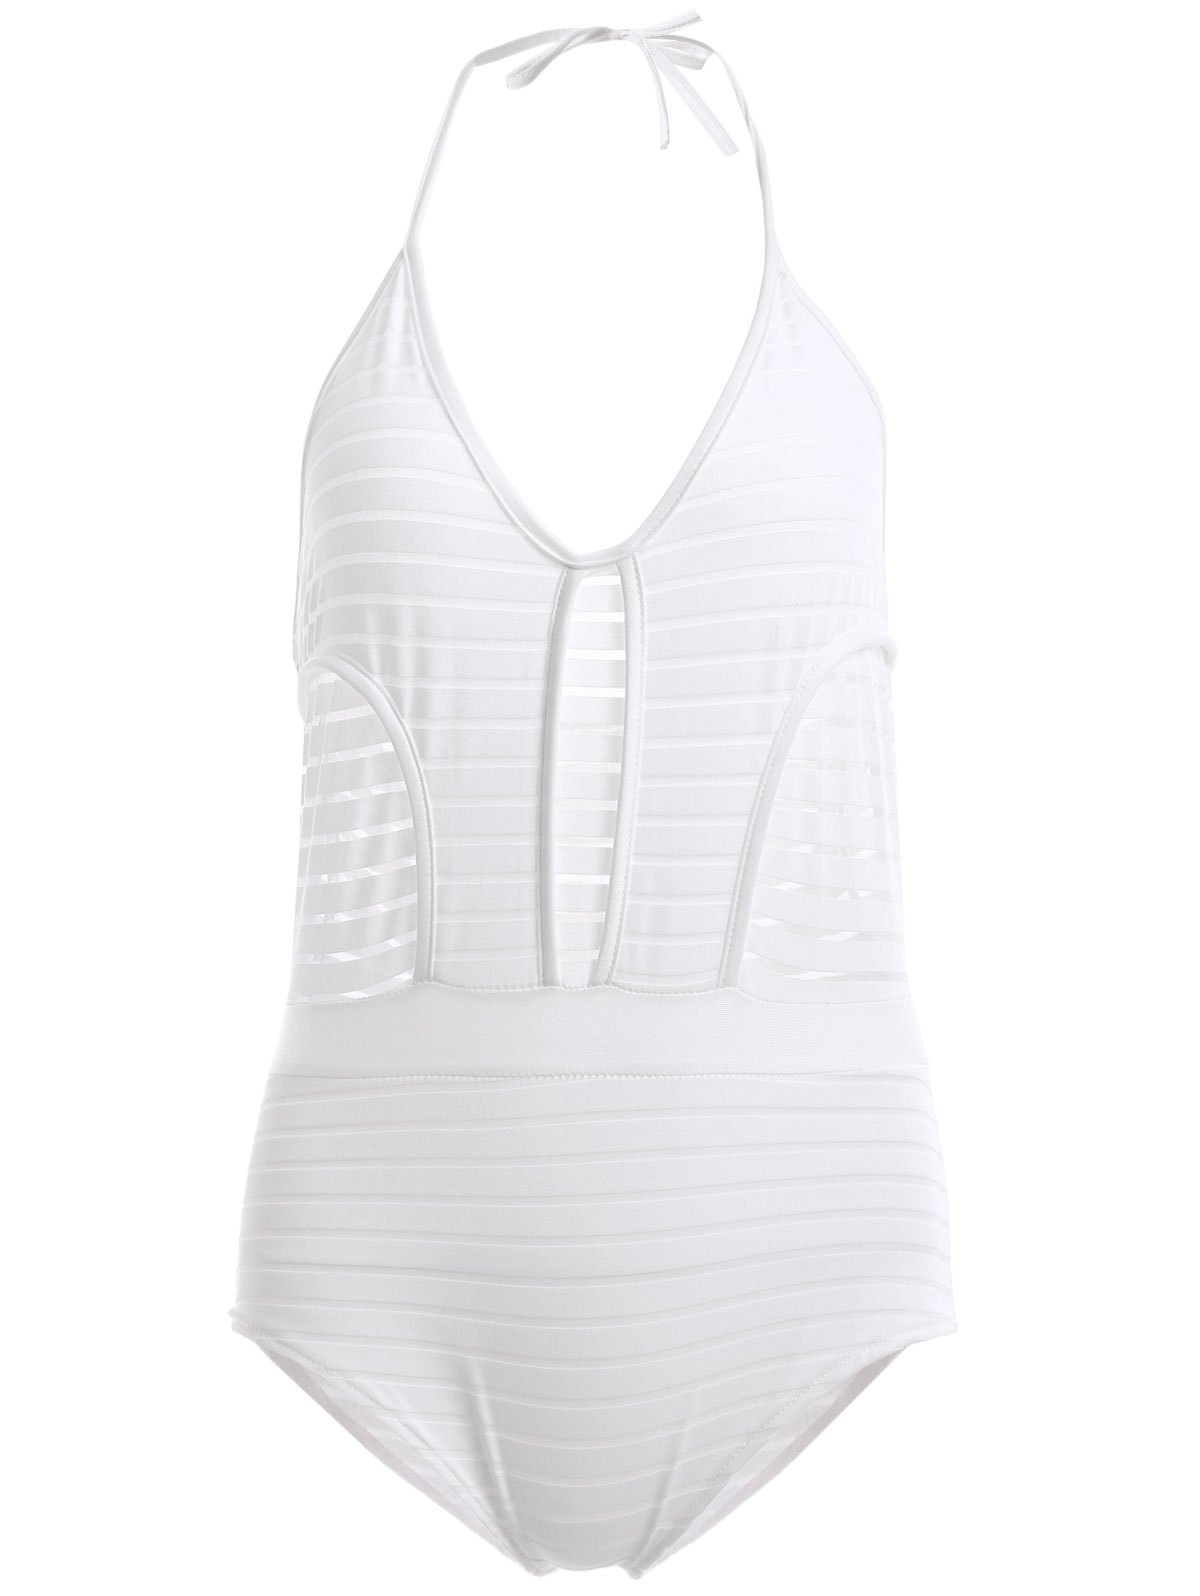 Attractive Women's Halter Backless Openwork One-Piece Swimsuit - WHITE S